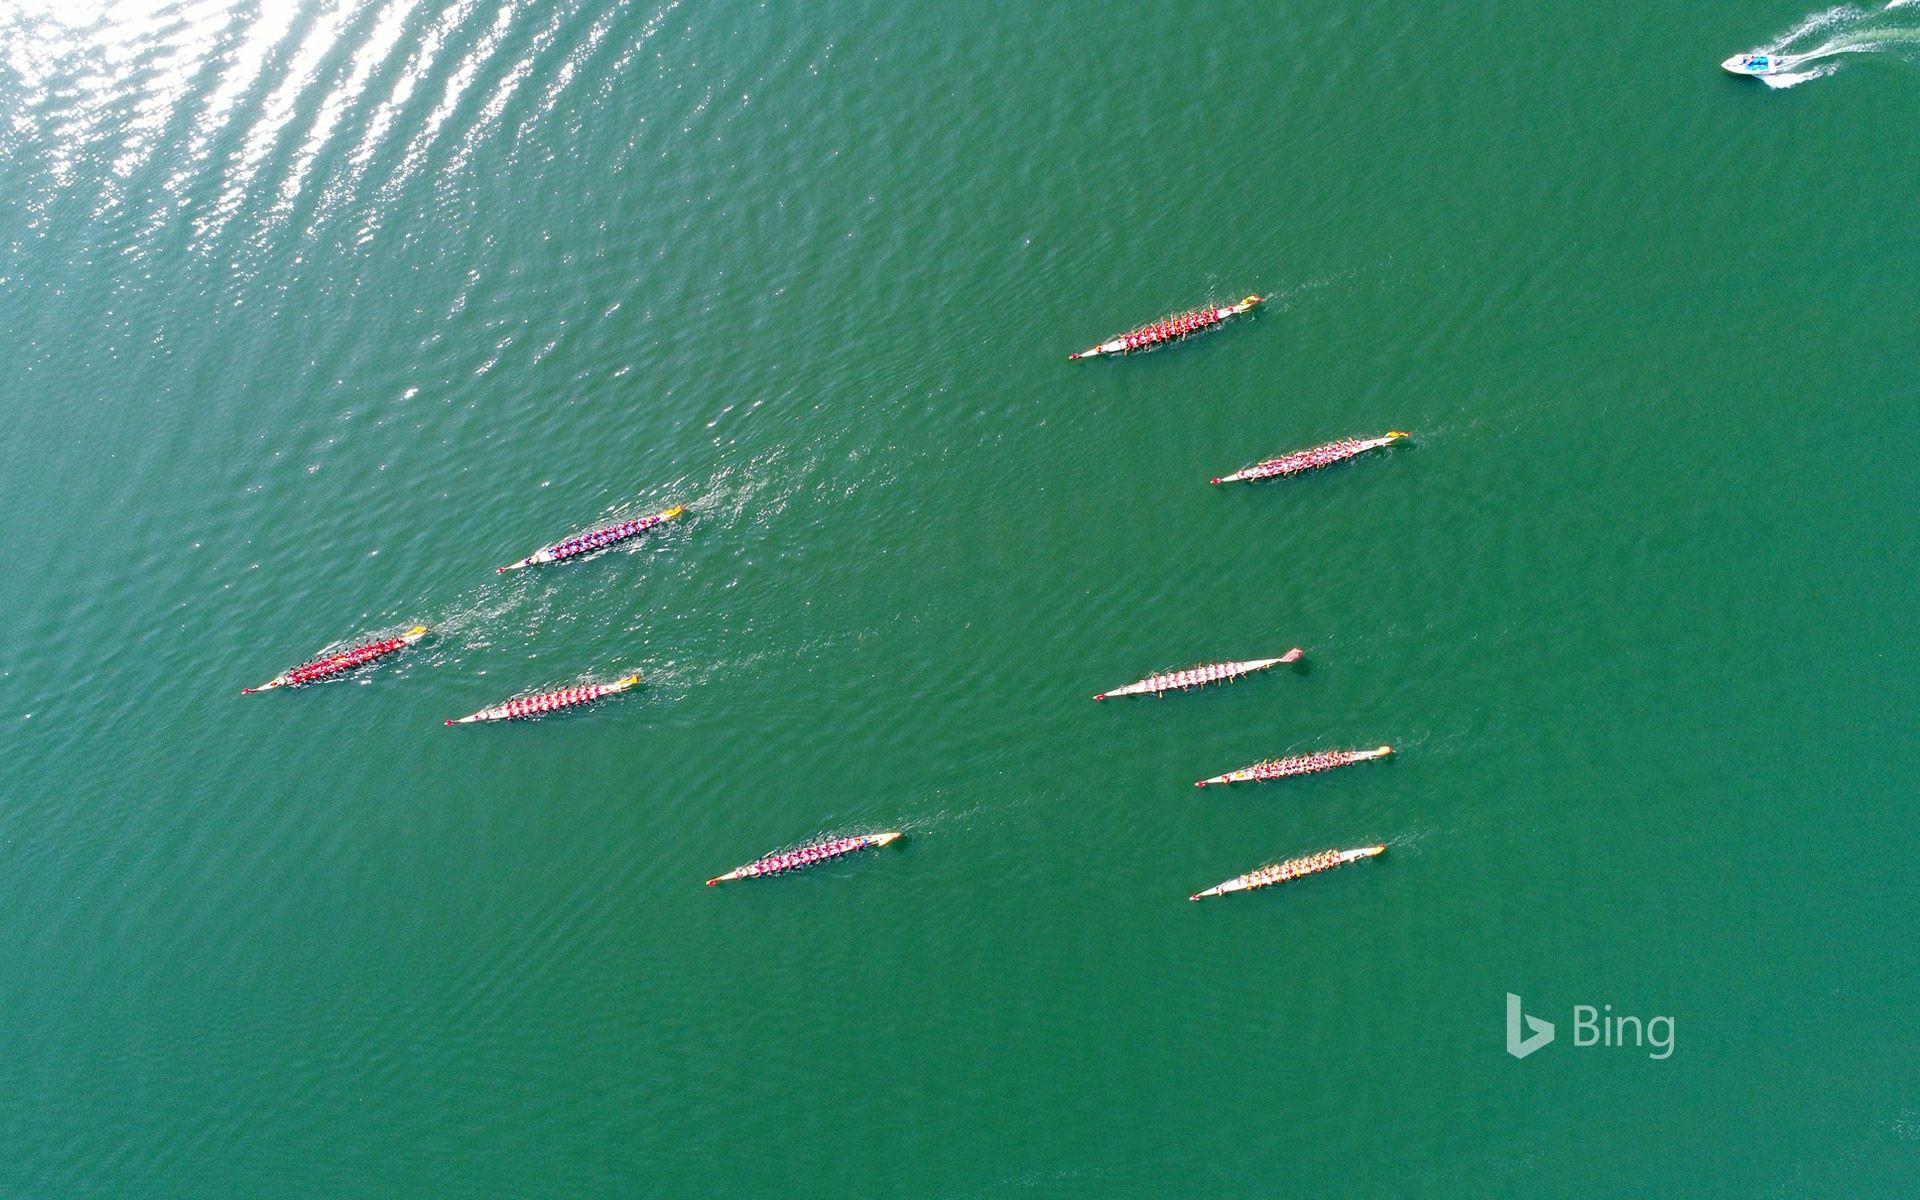 [Today's Dragon Boat Festival] 12 dragon boats participating in the Xiangyang Dragon Boat Race, Xiangyang City, Hubei Province, China